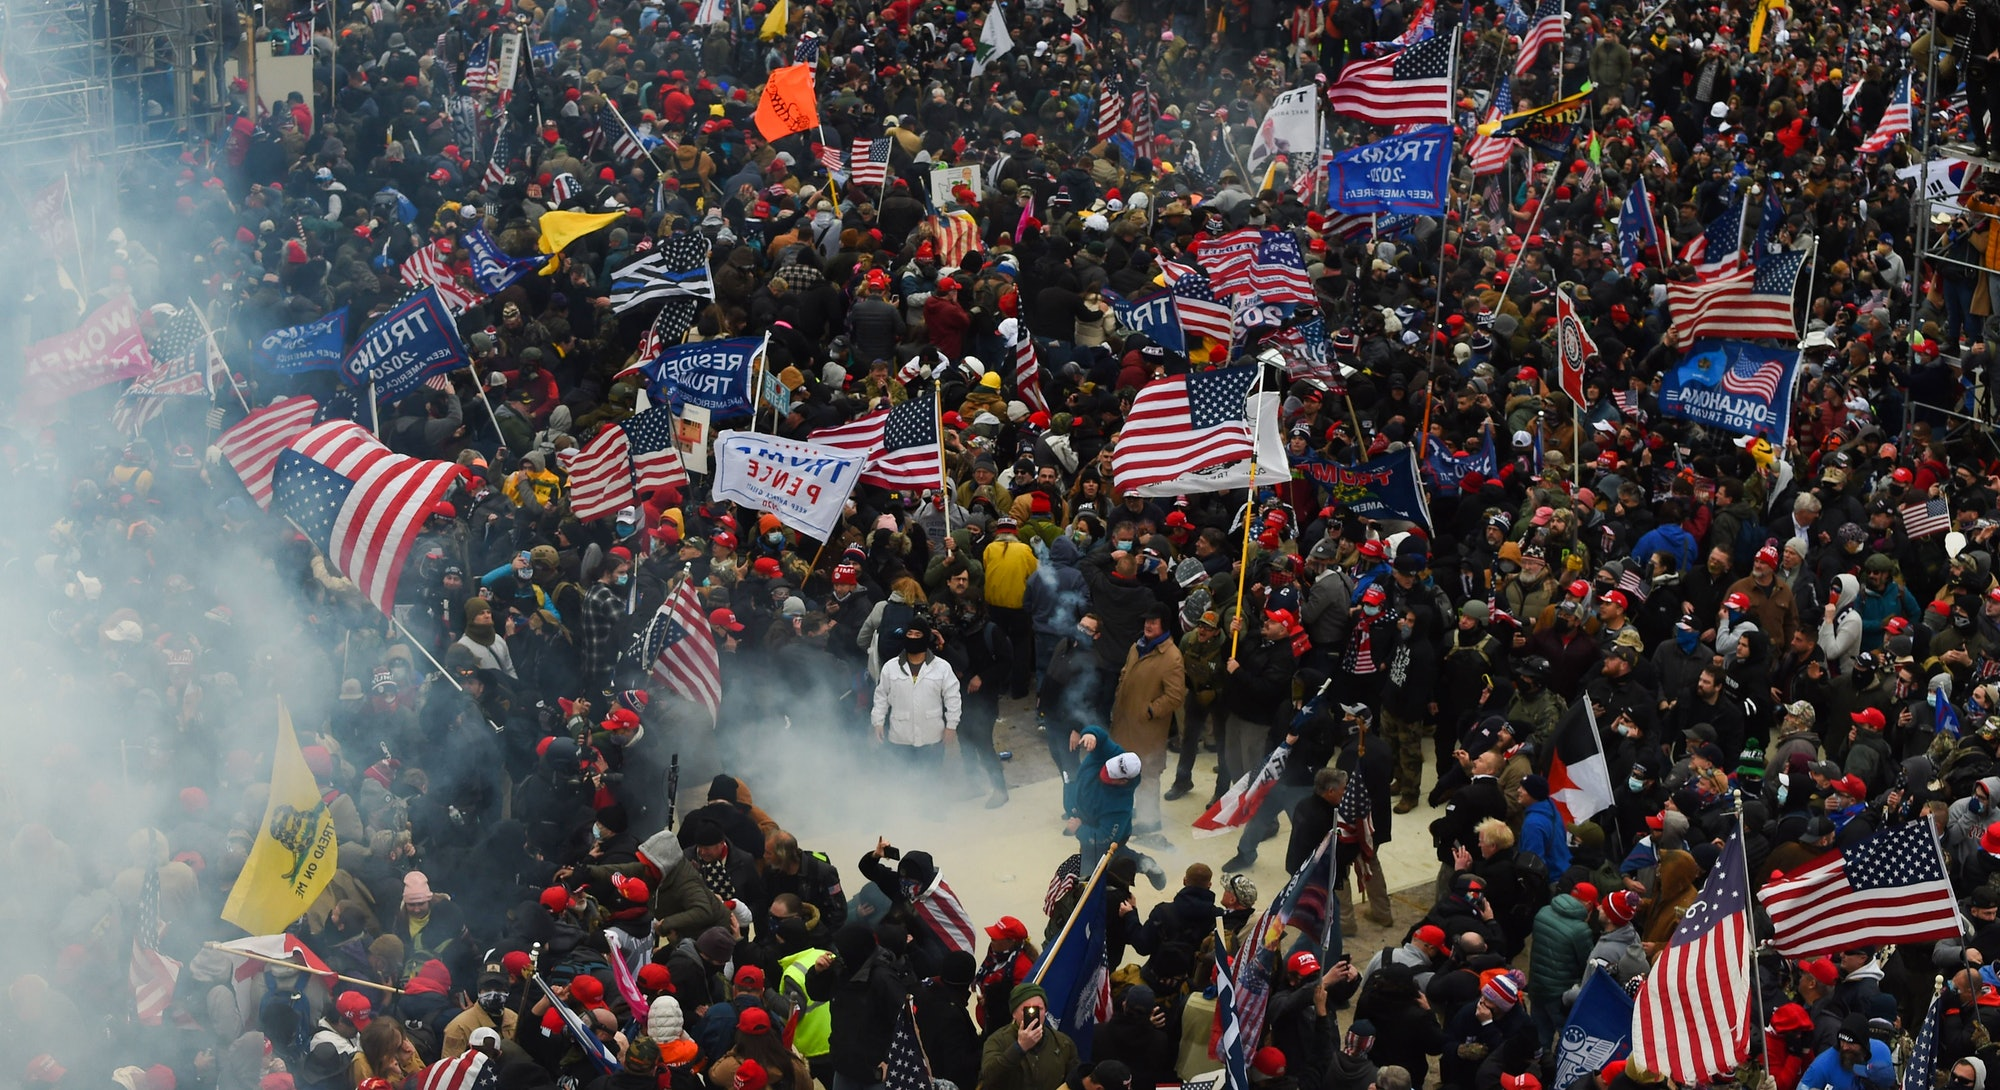 Photos of Wednesday Jan 6 Capitol Building insurrection